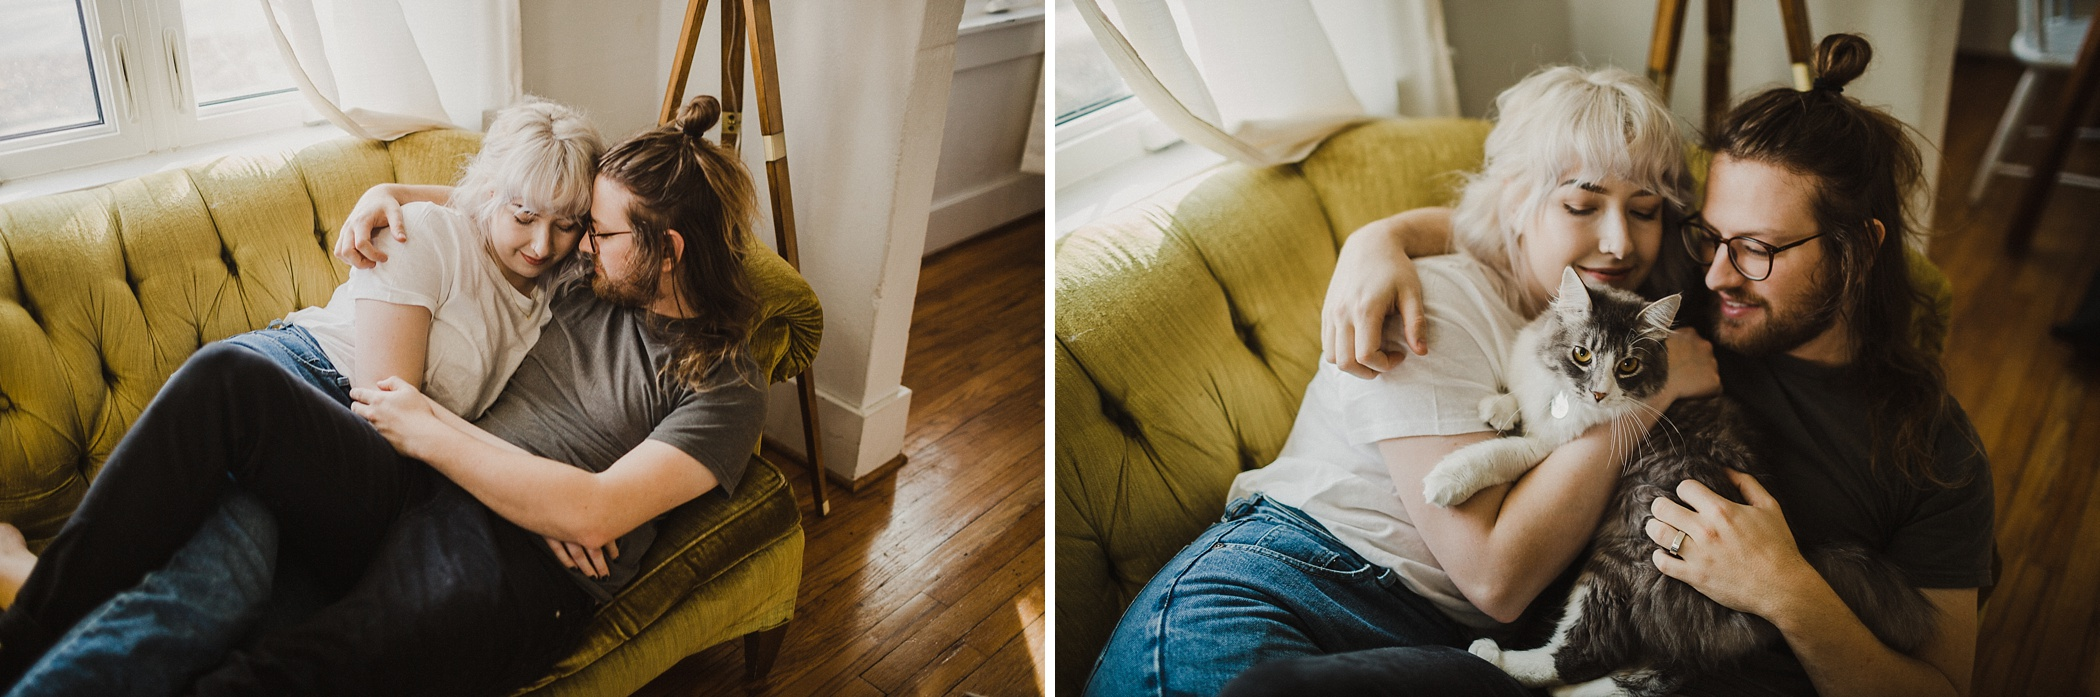 intimate in home session, in home session, mid century home, intimate in home session mid century home, in home session with cat, the johnsons, the johnsons photo. adorable mid century home, mid century home filled with thrifted finds